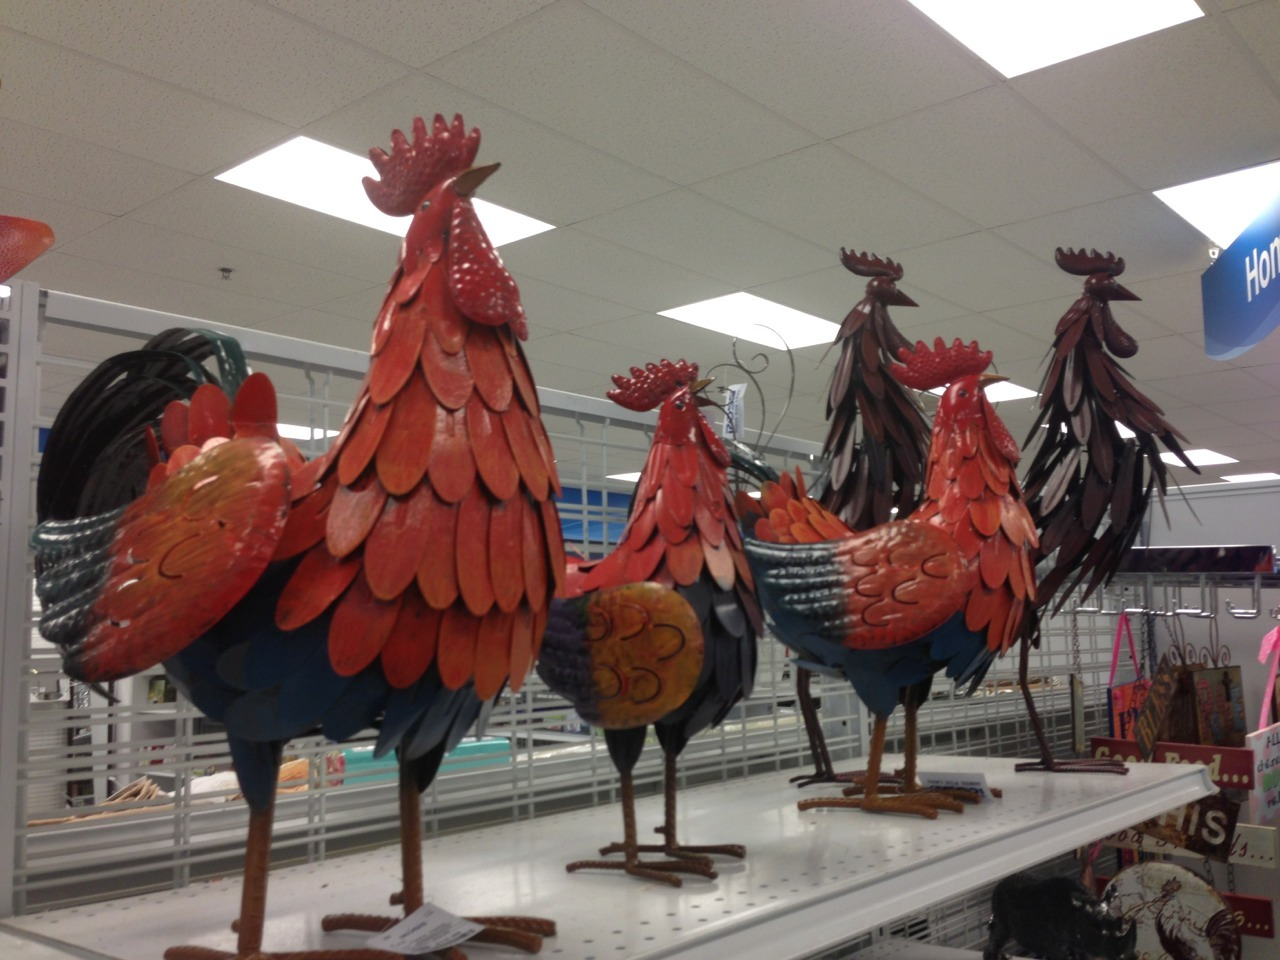 WALK UP INTO ROSS LIKE WHAT UP WE GOT SOME BIG COCKS AT HALF RETAIL PRICE